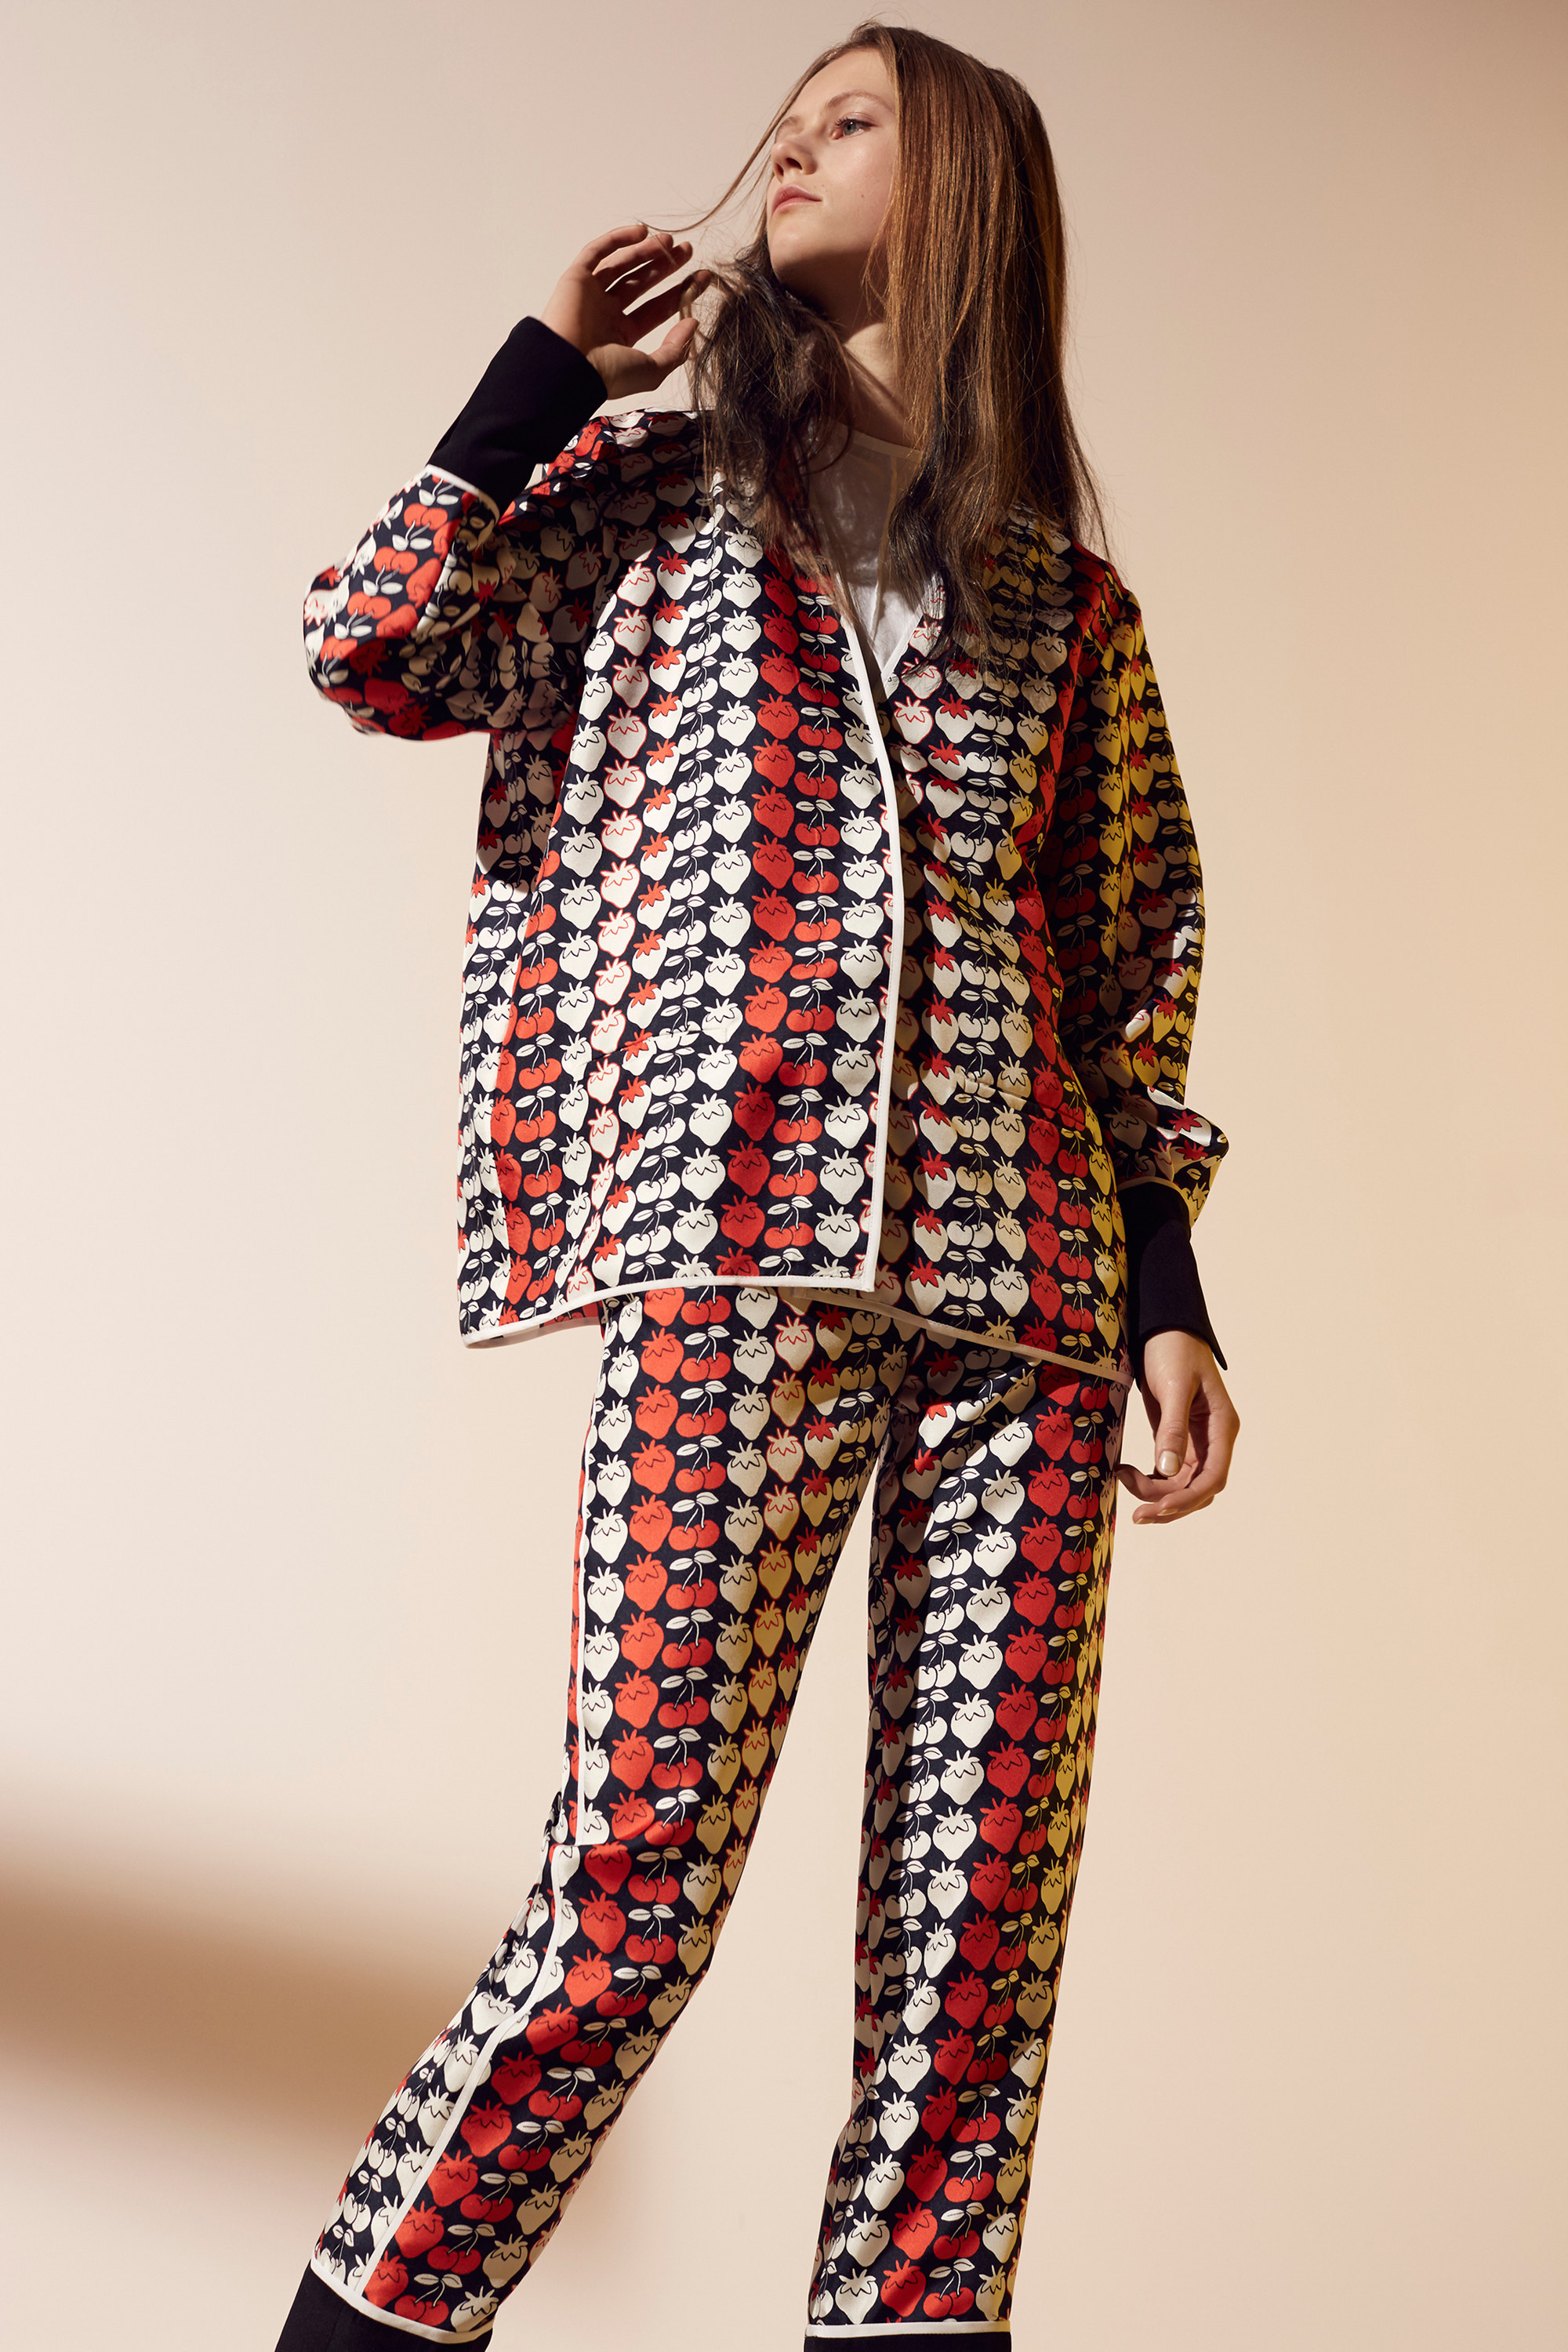 victoria-victoria-beckham-pre-fall-2016-lookbook-14.jpg